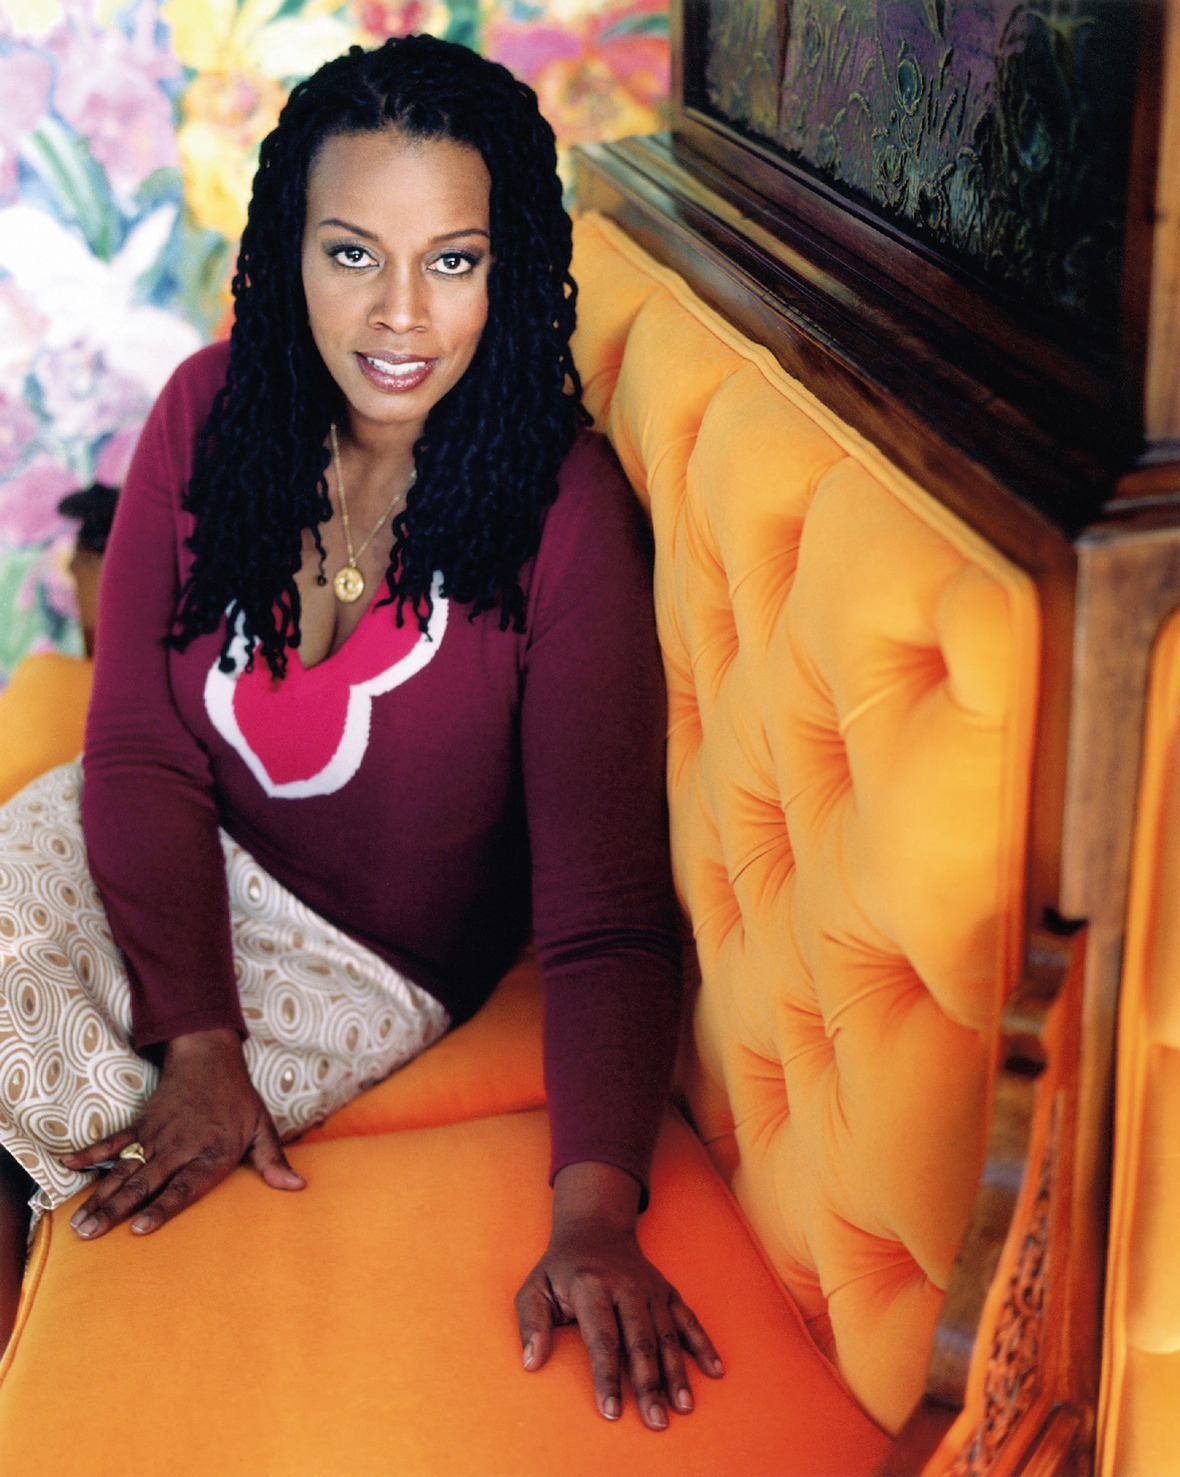 Dianne Reeves - For Every Heart